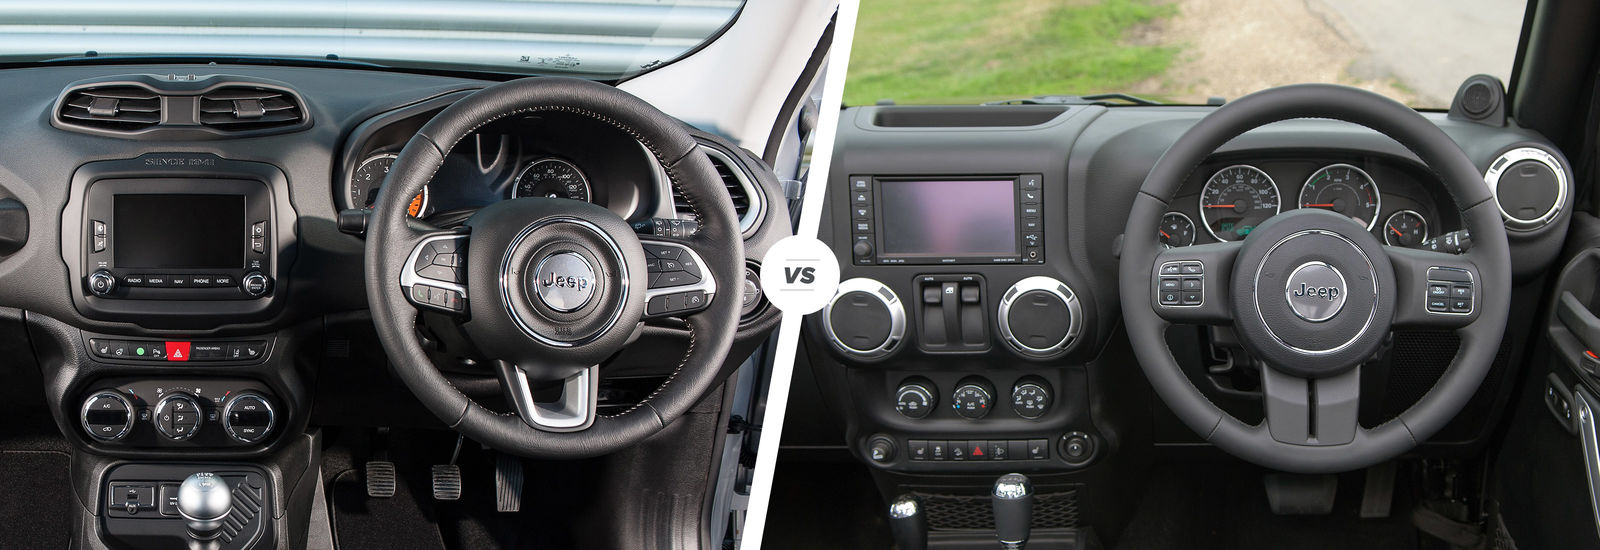 Jeep Renegade Vs Wrangler Which Is Best Carwow